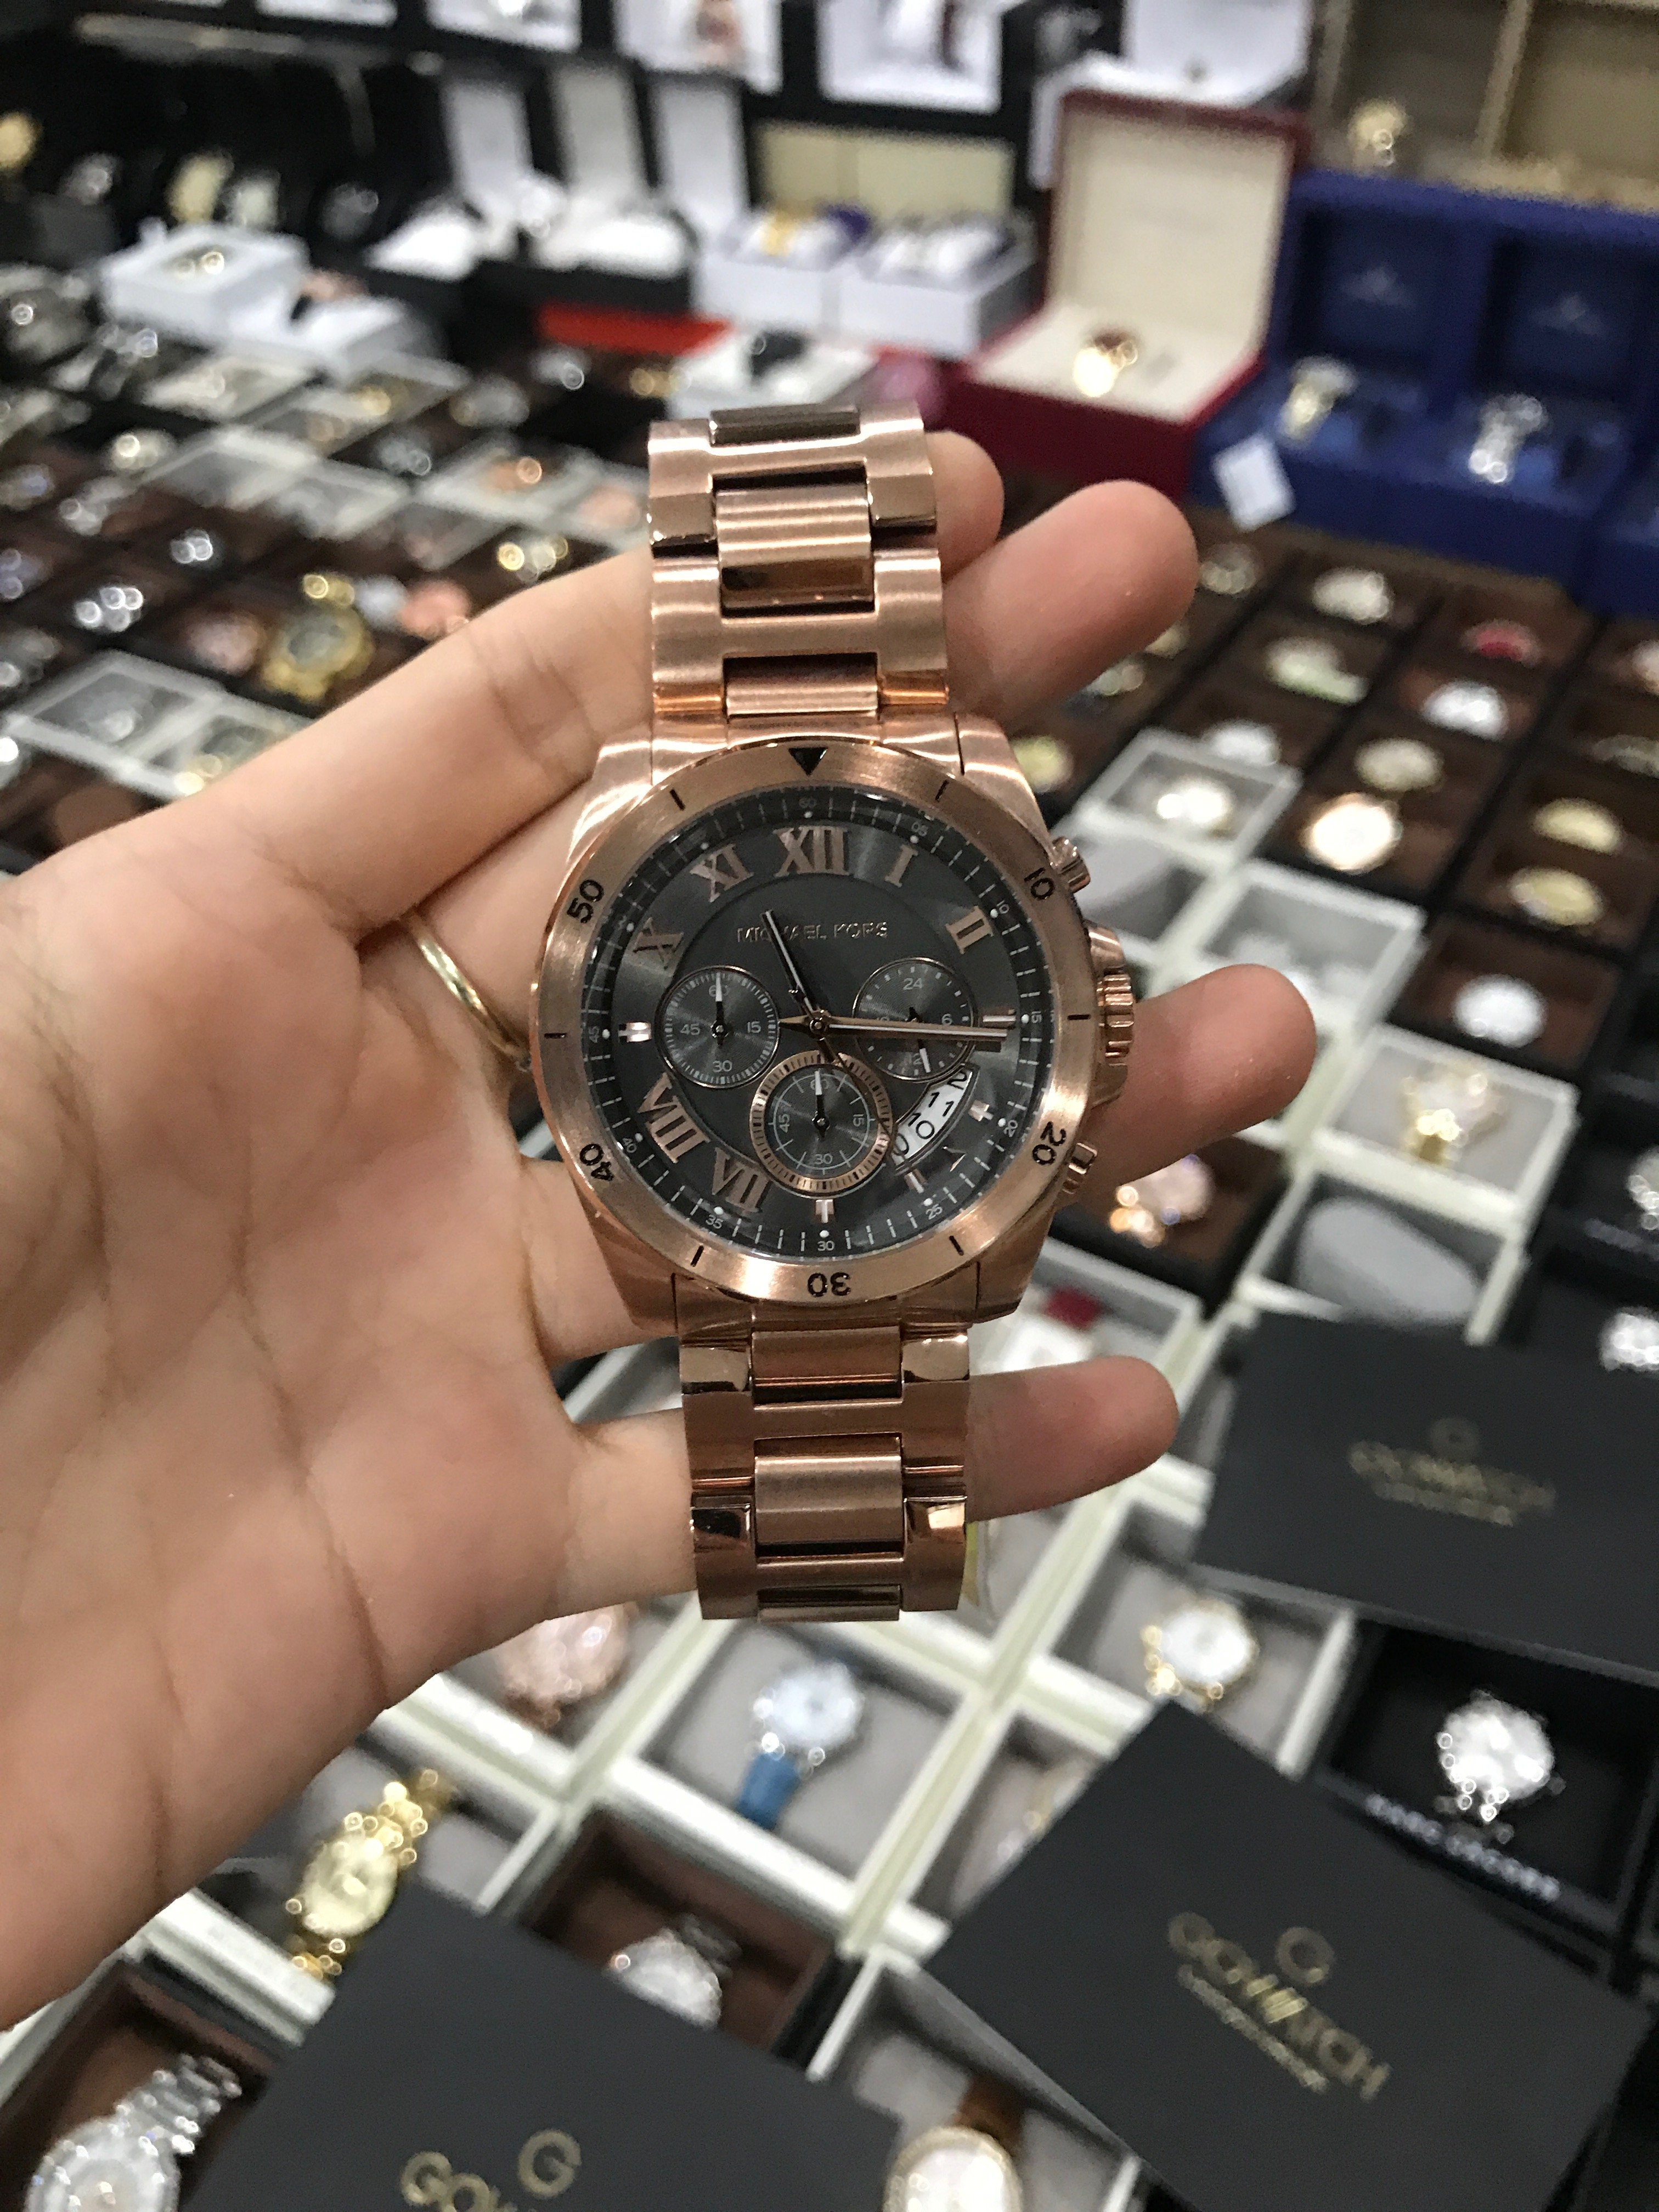 60a30c1d003c MICHAEL KORS Brecken Grey Dial Men s Rose Gold Chronograph Watch Item –  Đồng hồ xách tay GoWatch